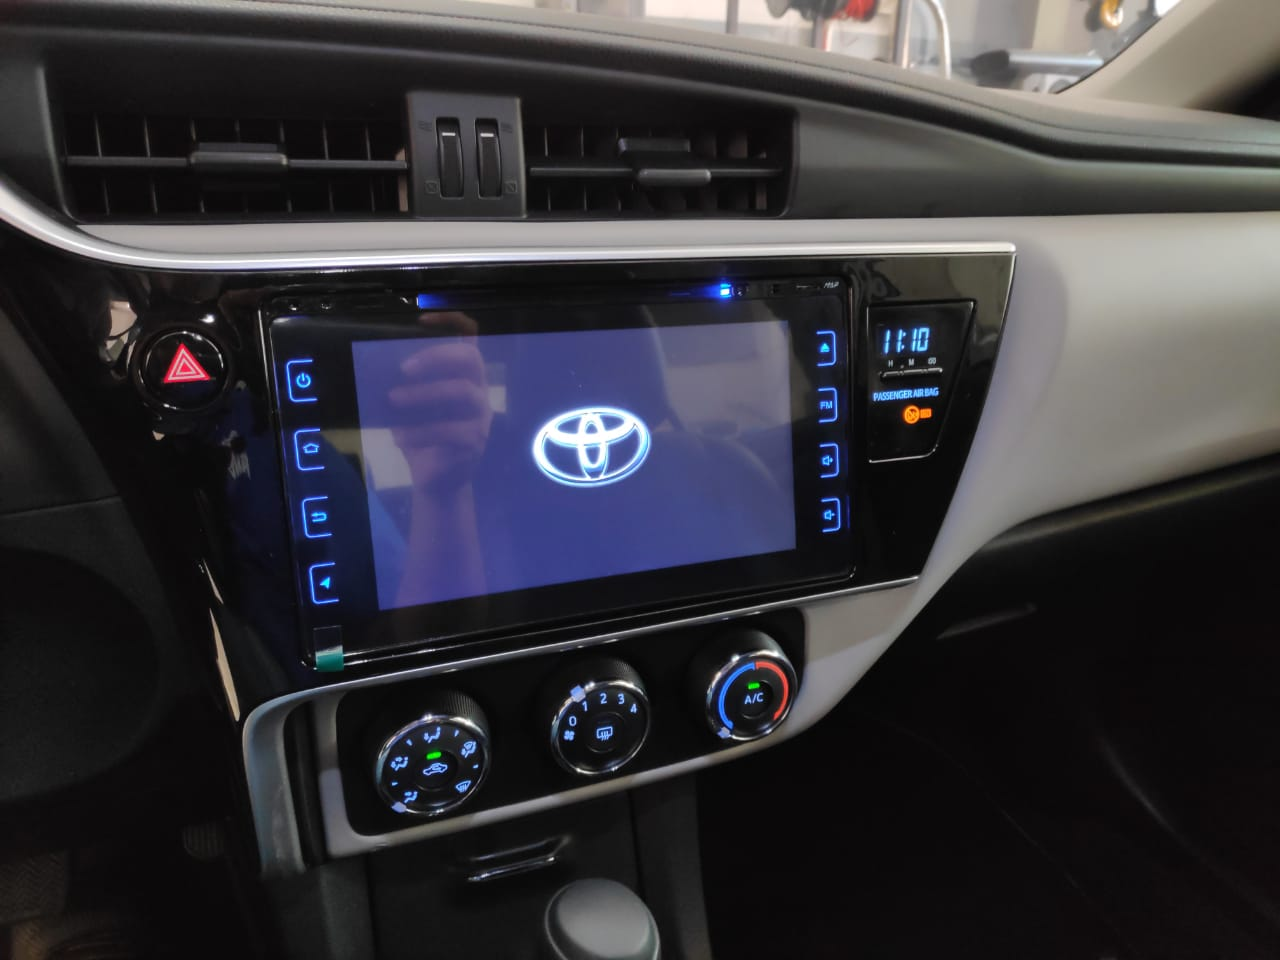 "Multimídia Corolla 2018 M1 Tela 10"" Gps Wifi Waze TV Digital"